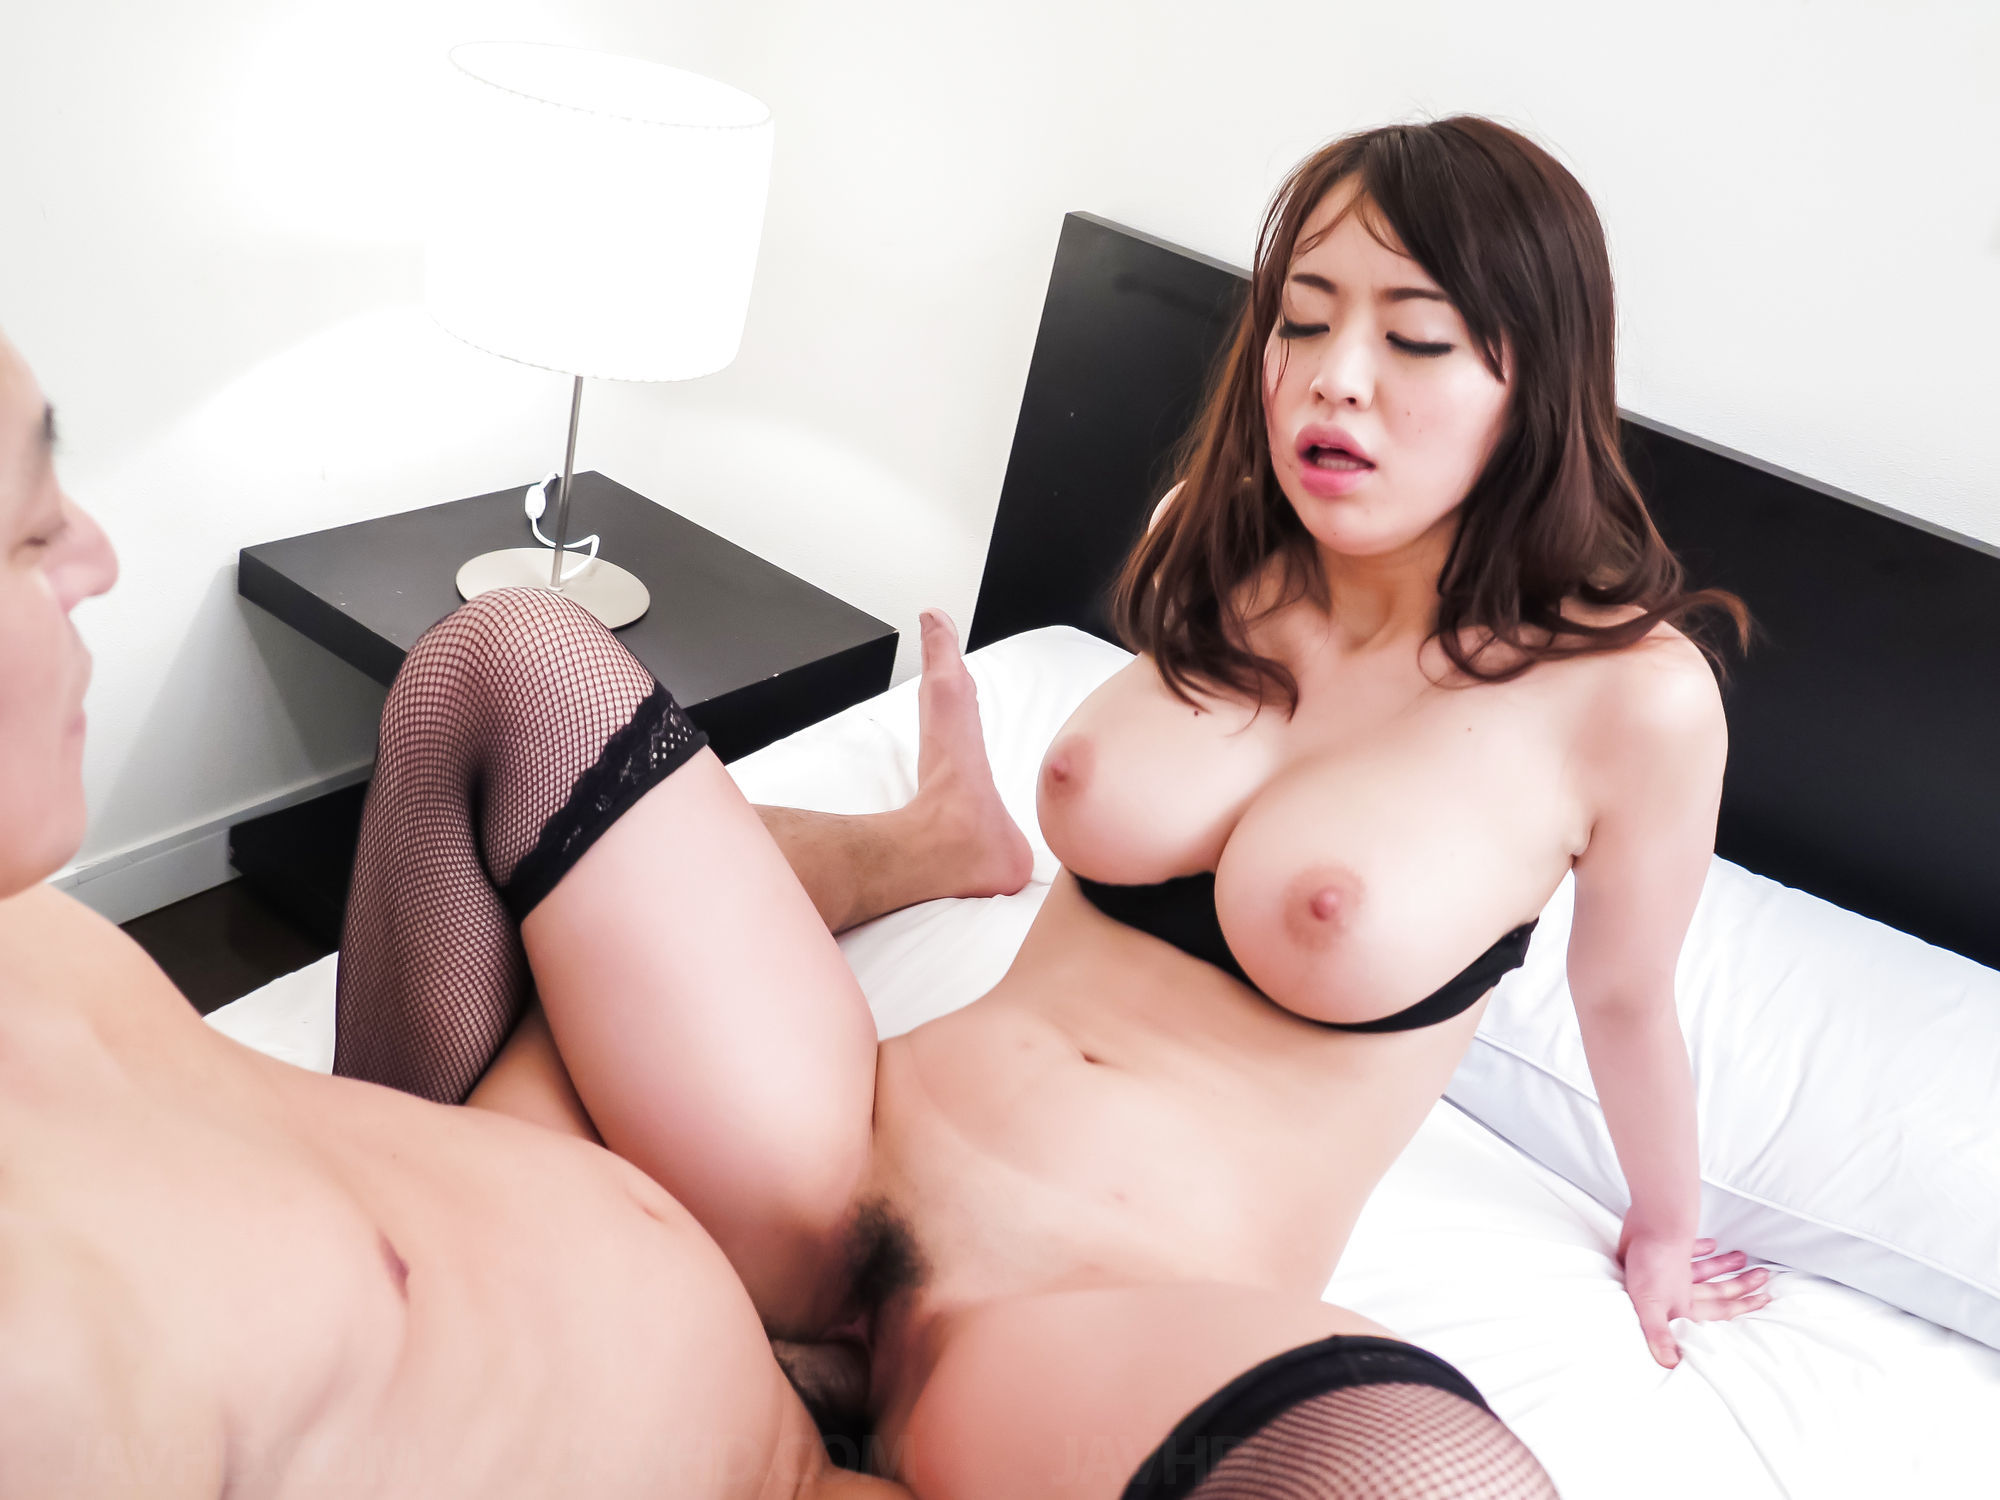 Mei haruka uncensored gangbang beautiful jp 1